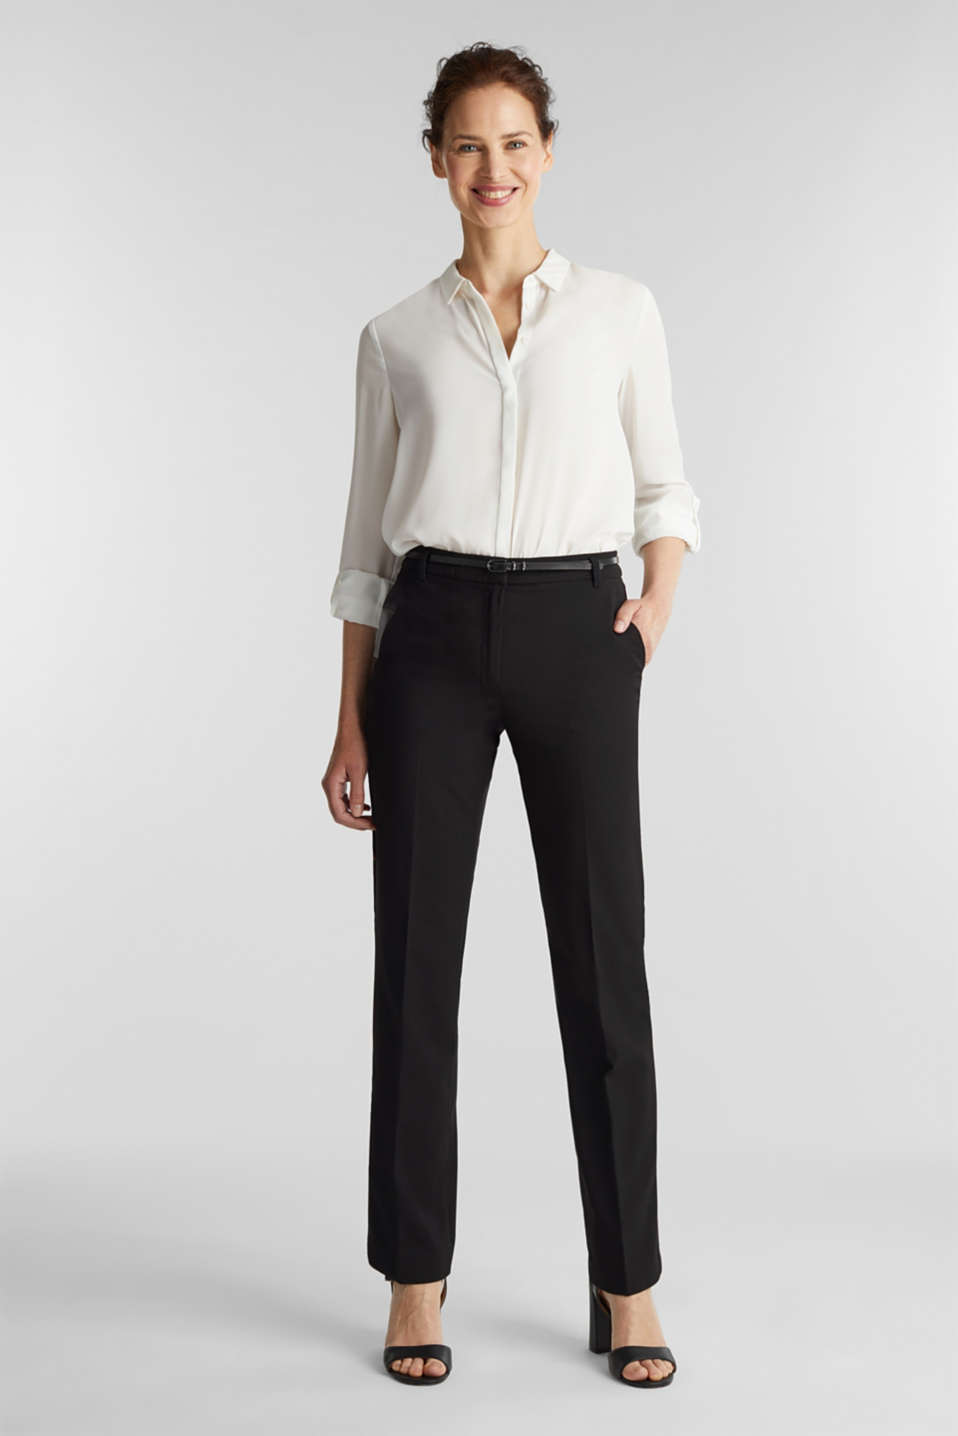 PURE BUSINESS Mix + Match stretch trousers, BLACK, detail